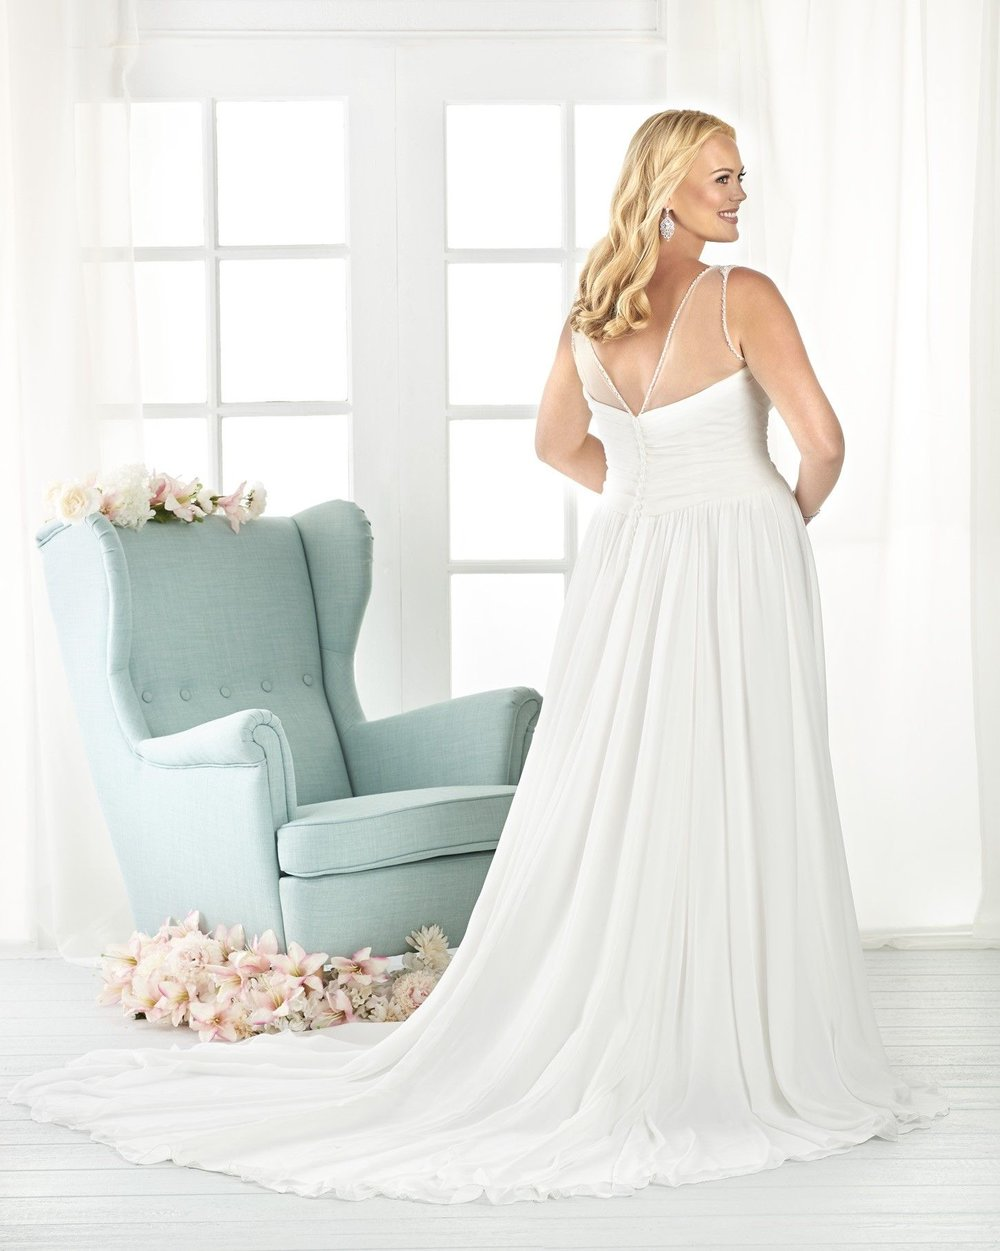 BonnyBridal-BridesbyYoung-PlusSizeWeddingDress-1813.jpg